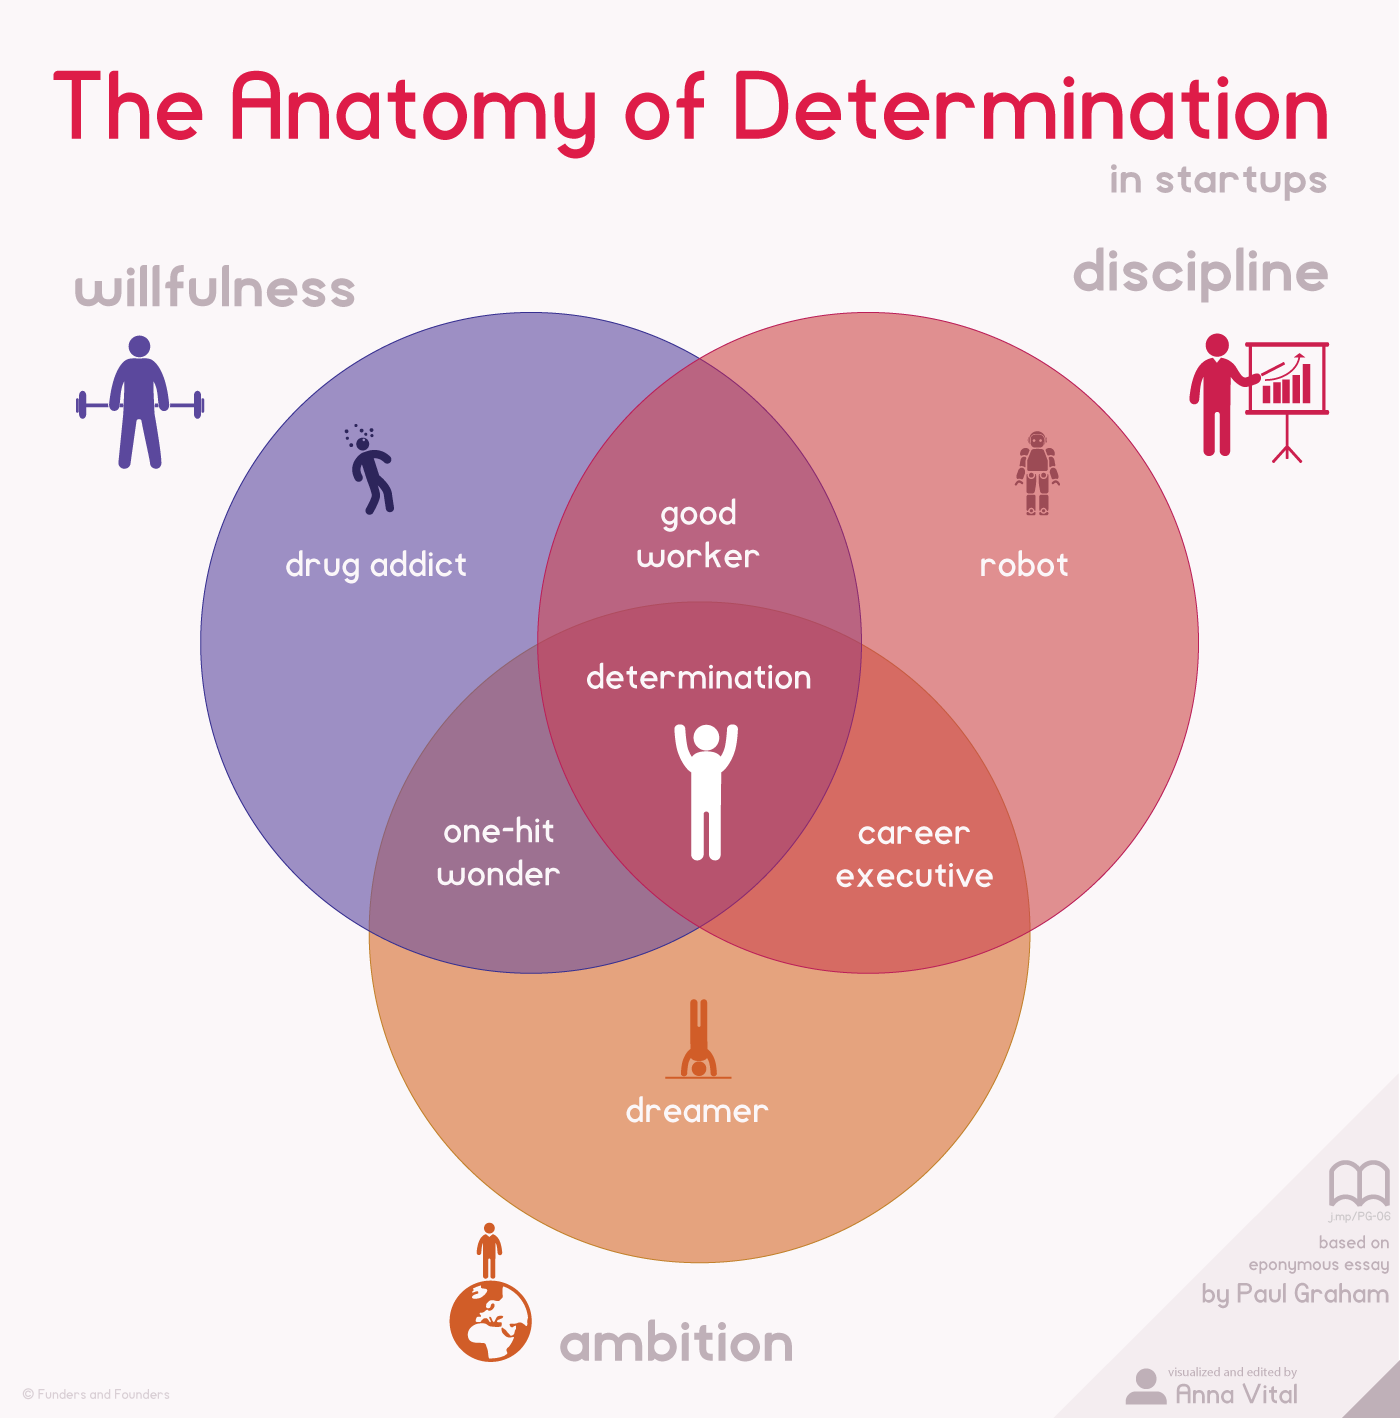 005 Essay Example The Anatomy Of Determination In Startups Infographic Paul Graham Awesome Essays Silicon Valley Name Book Full